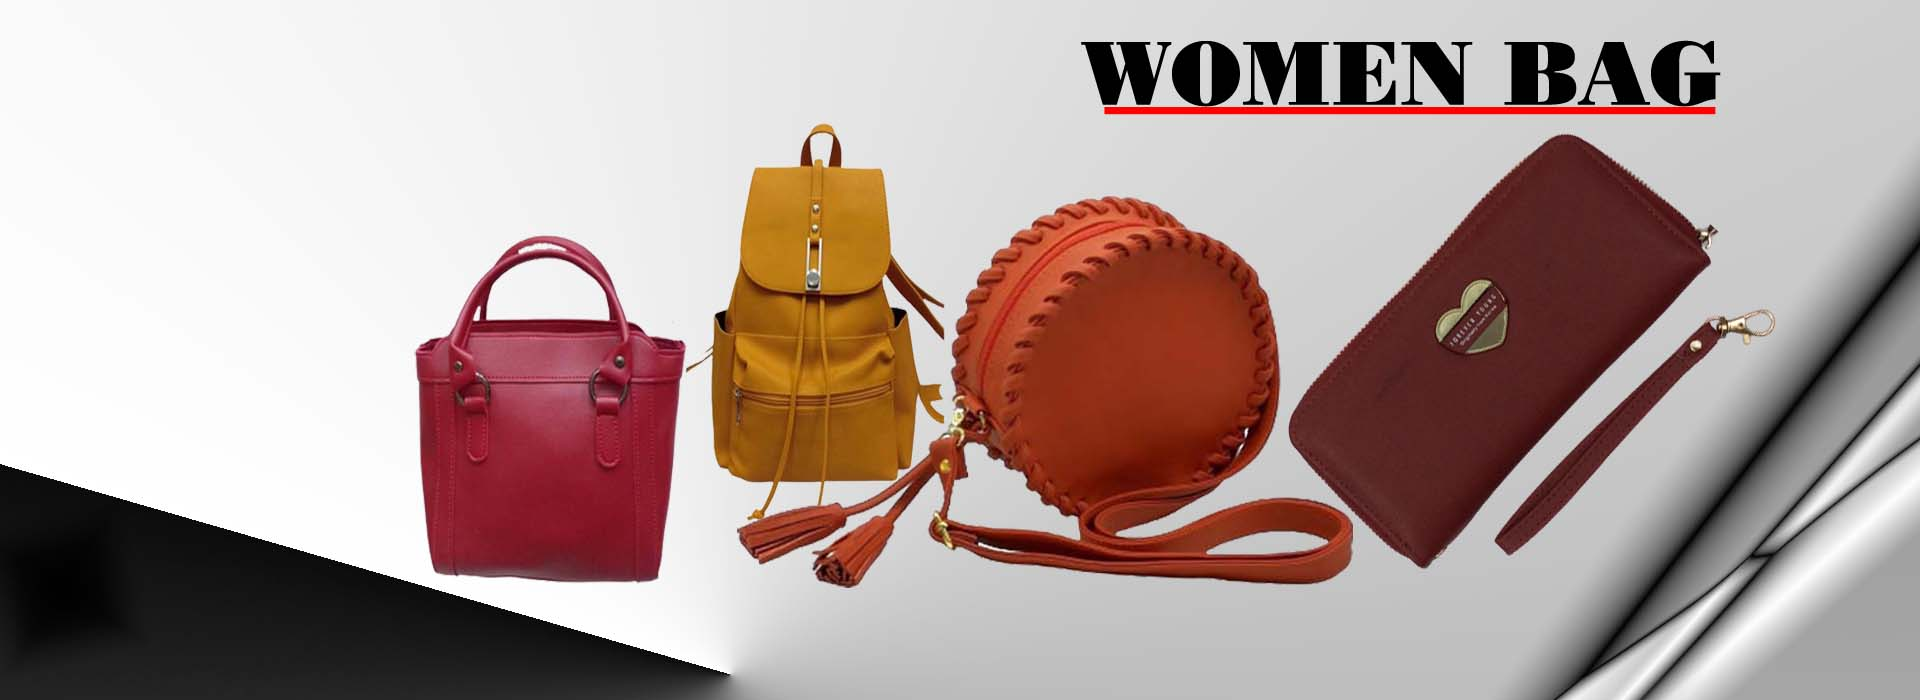 women bag Banner copy